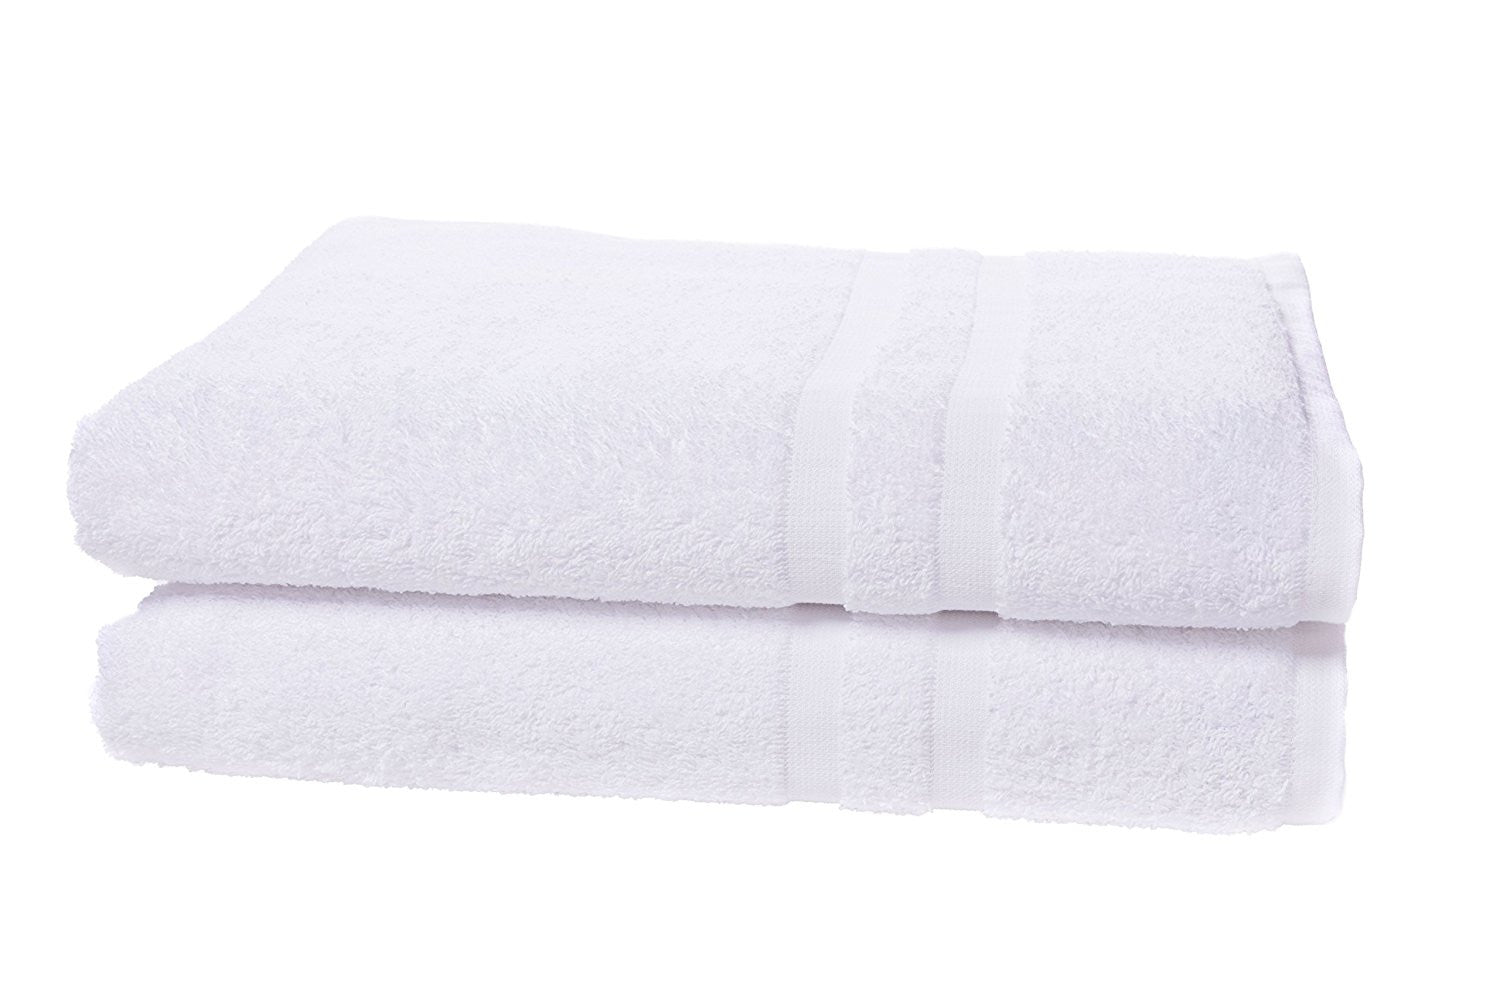 500 GSM Institutional Towels